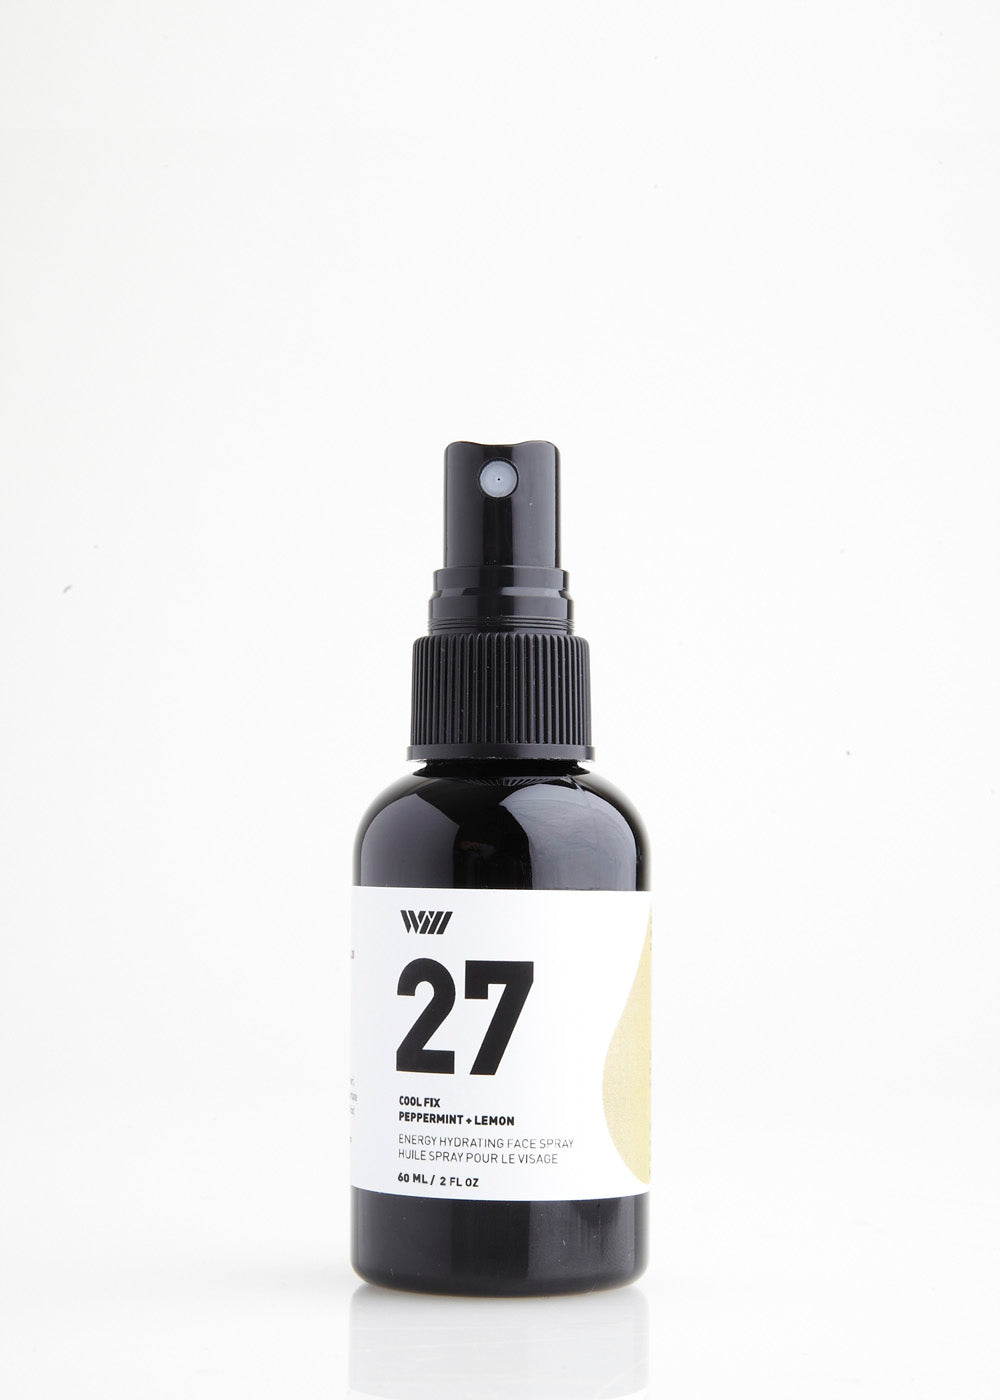 27 Cool Fix | Energizing Facial Spray | Peppermint + Lemon